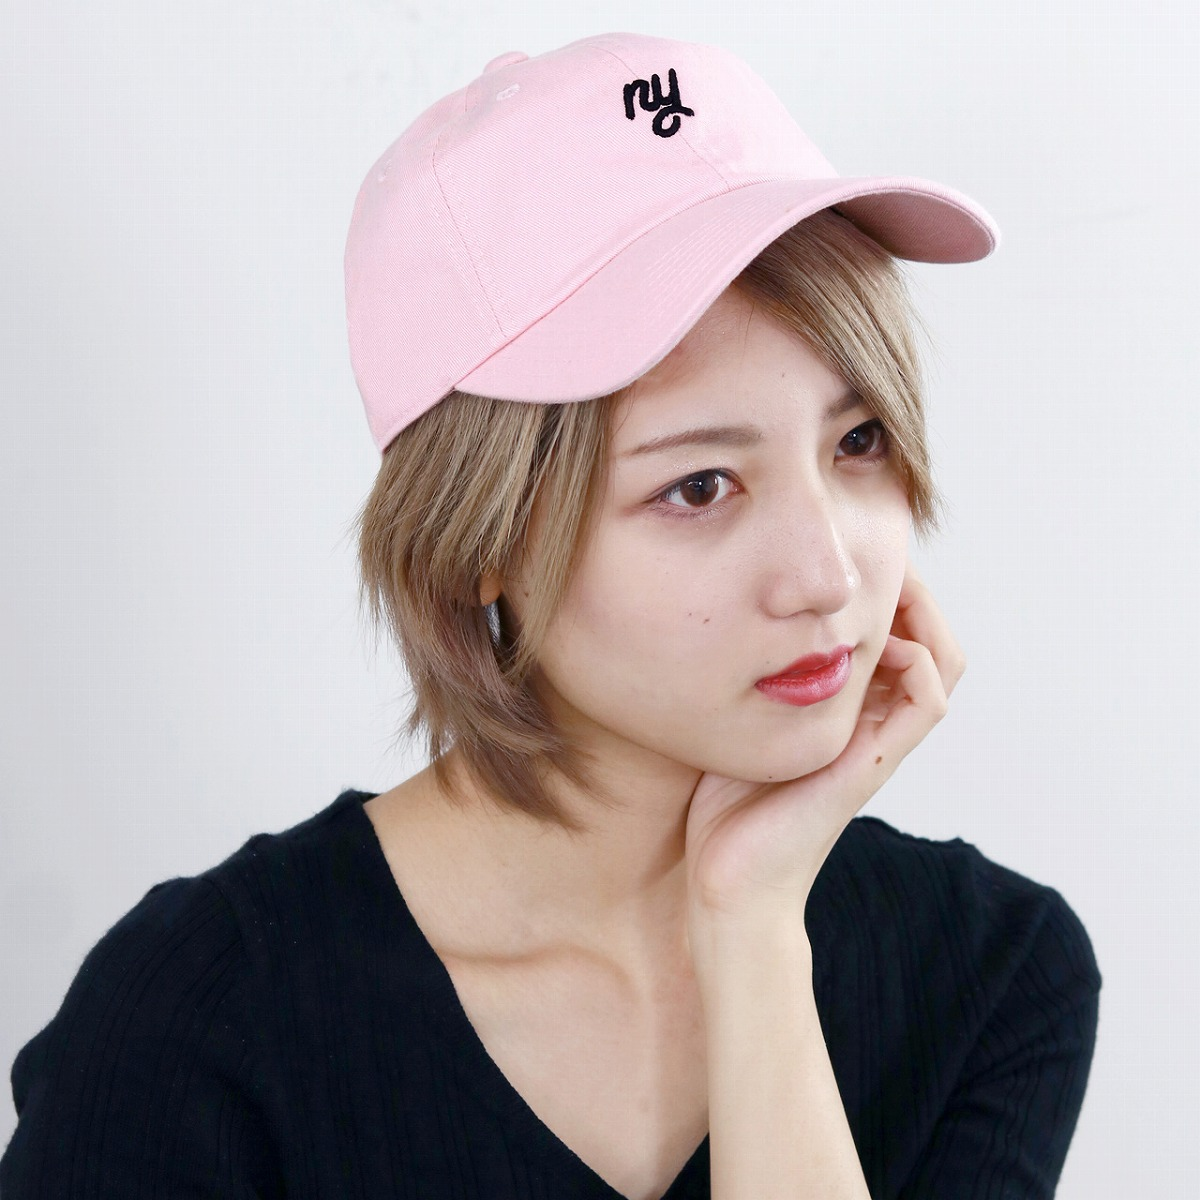 abb5b141f2e Needle hat pink (Christmas gift packing lapping free of charge) American in  cap cotton unisex NY embroidery logo AMERICAN NEEDLE New York baseball cap  oar ...